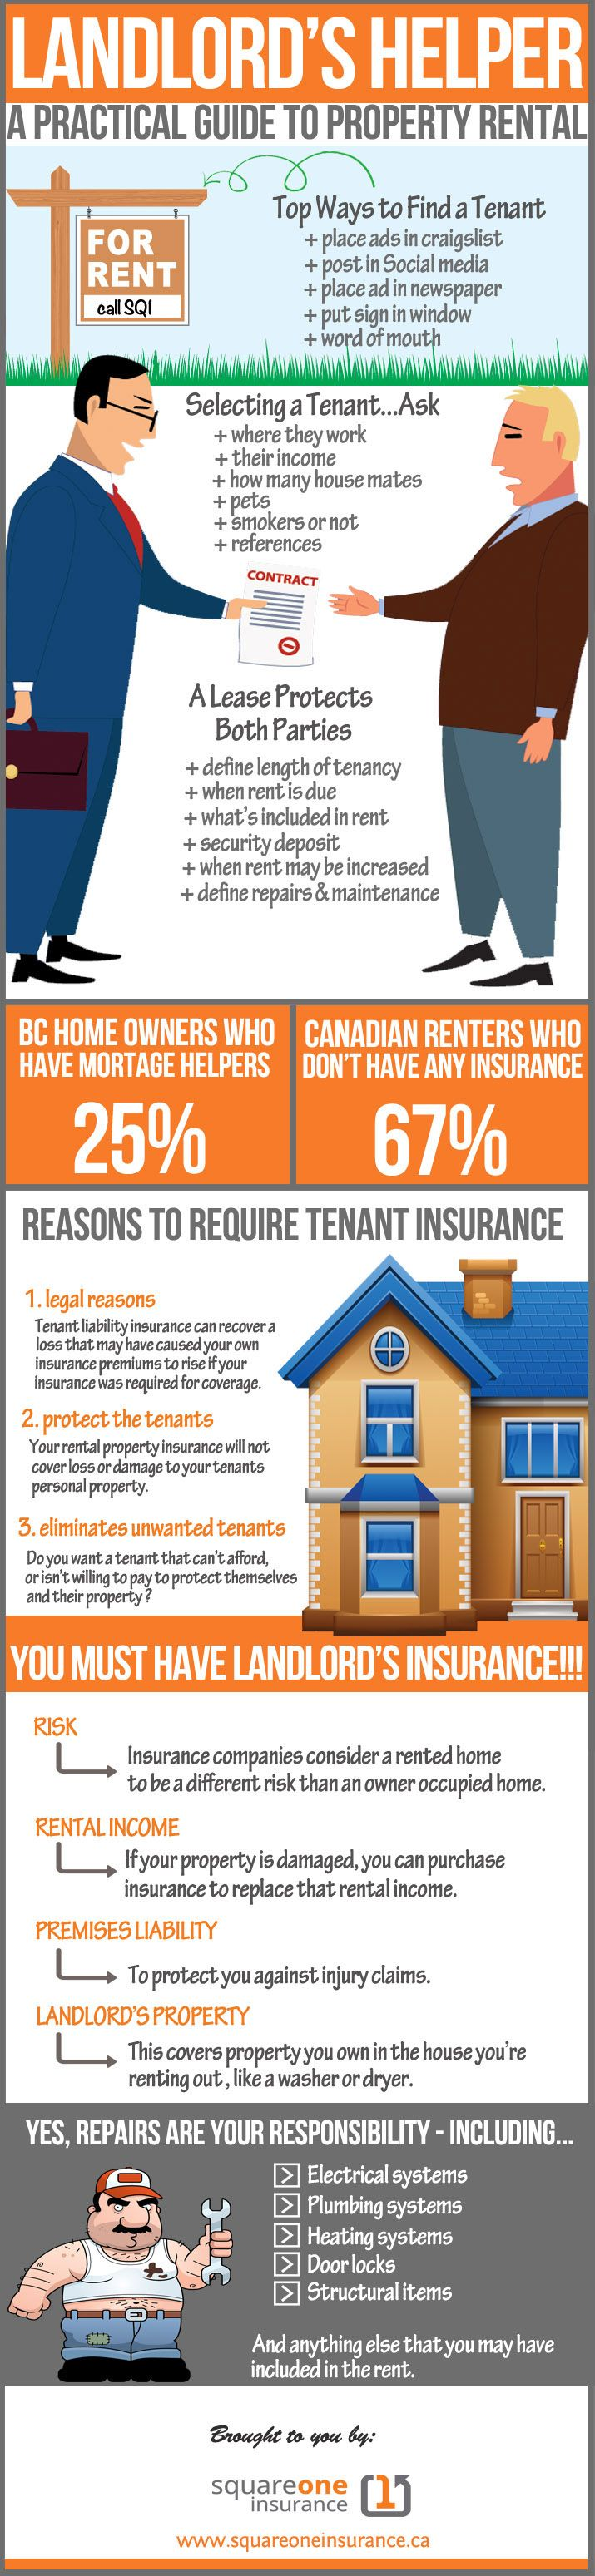 A rental property (or a rental suite in your home) can be a fantastic source of income. It can also be a major source of headaches (and costs) if you